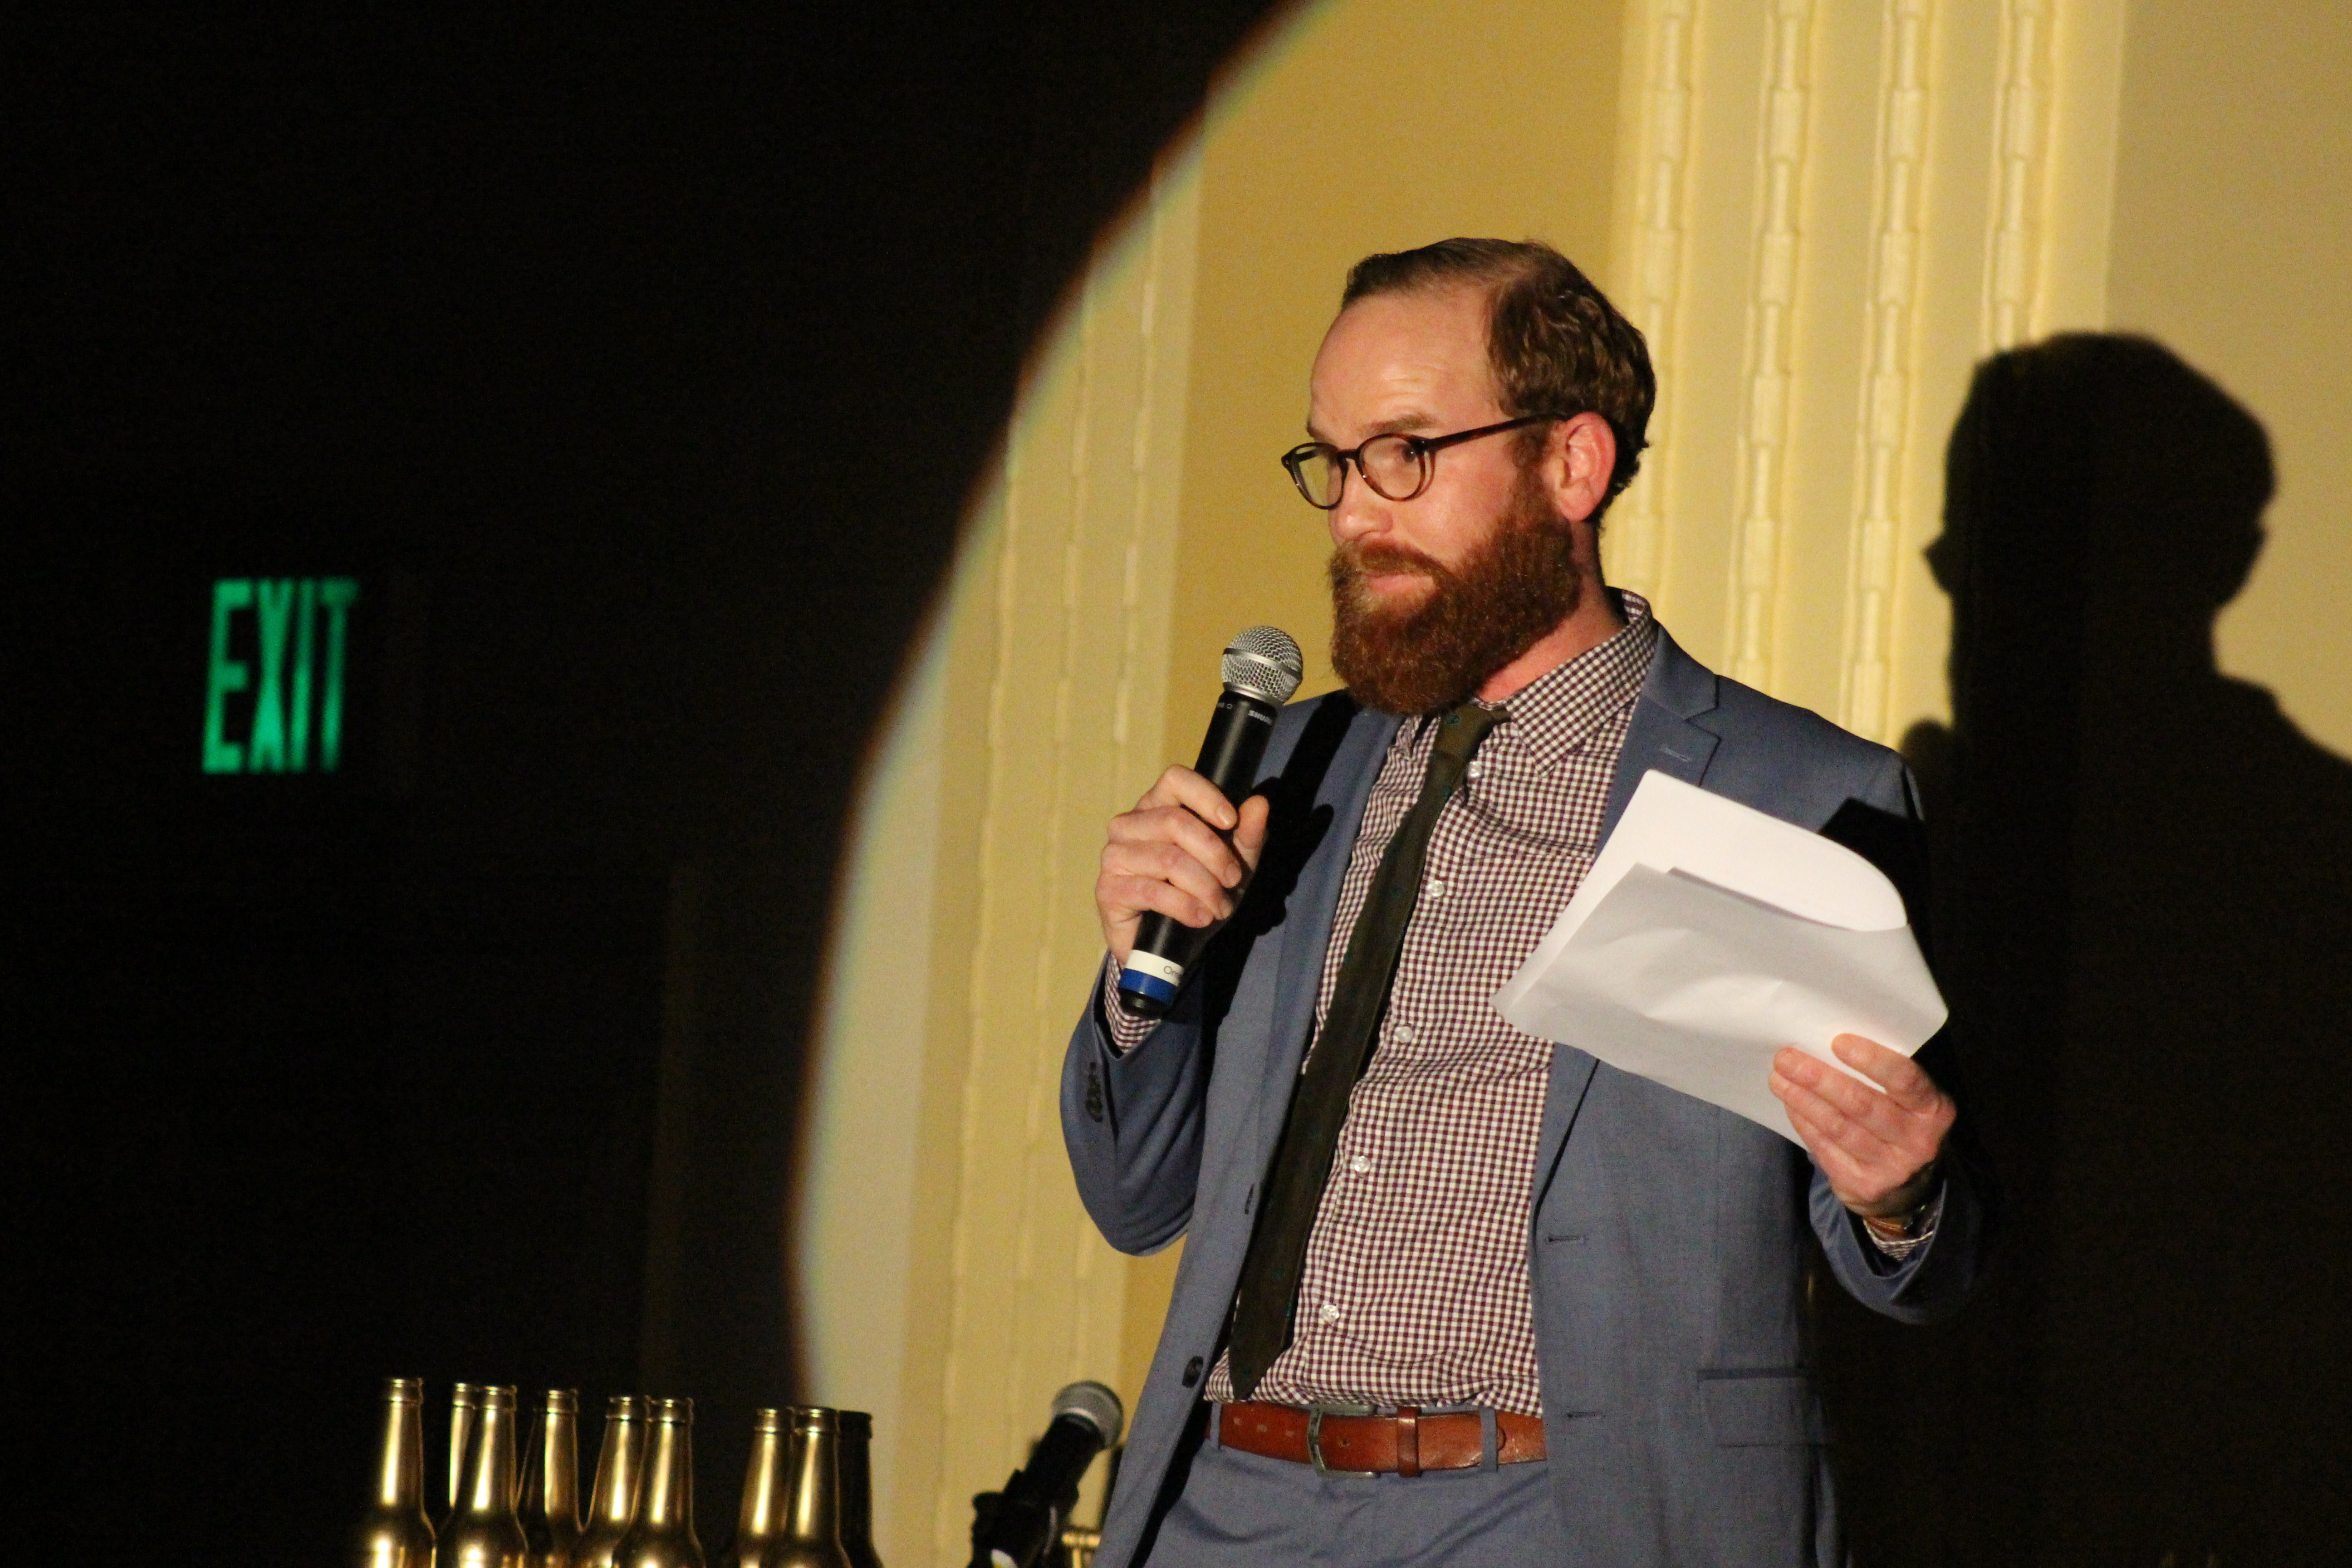 Barristers' Club President Jeff Leuschen delivers a monologue during the Barristers' Club Christmas show at the Paxton Ballroom, 1403 Farnam St., on Dec. 12, 2019. (Photo by Scott Stewart)